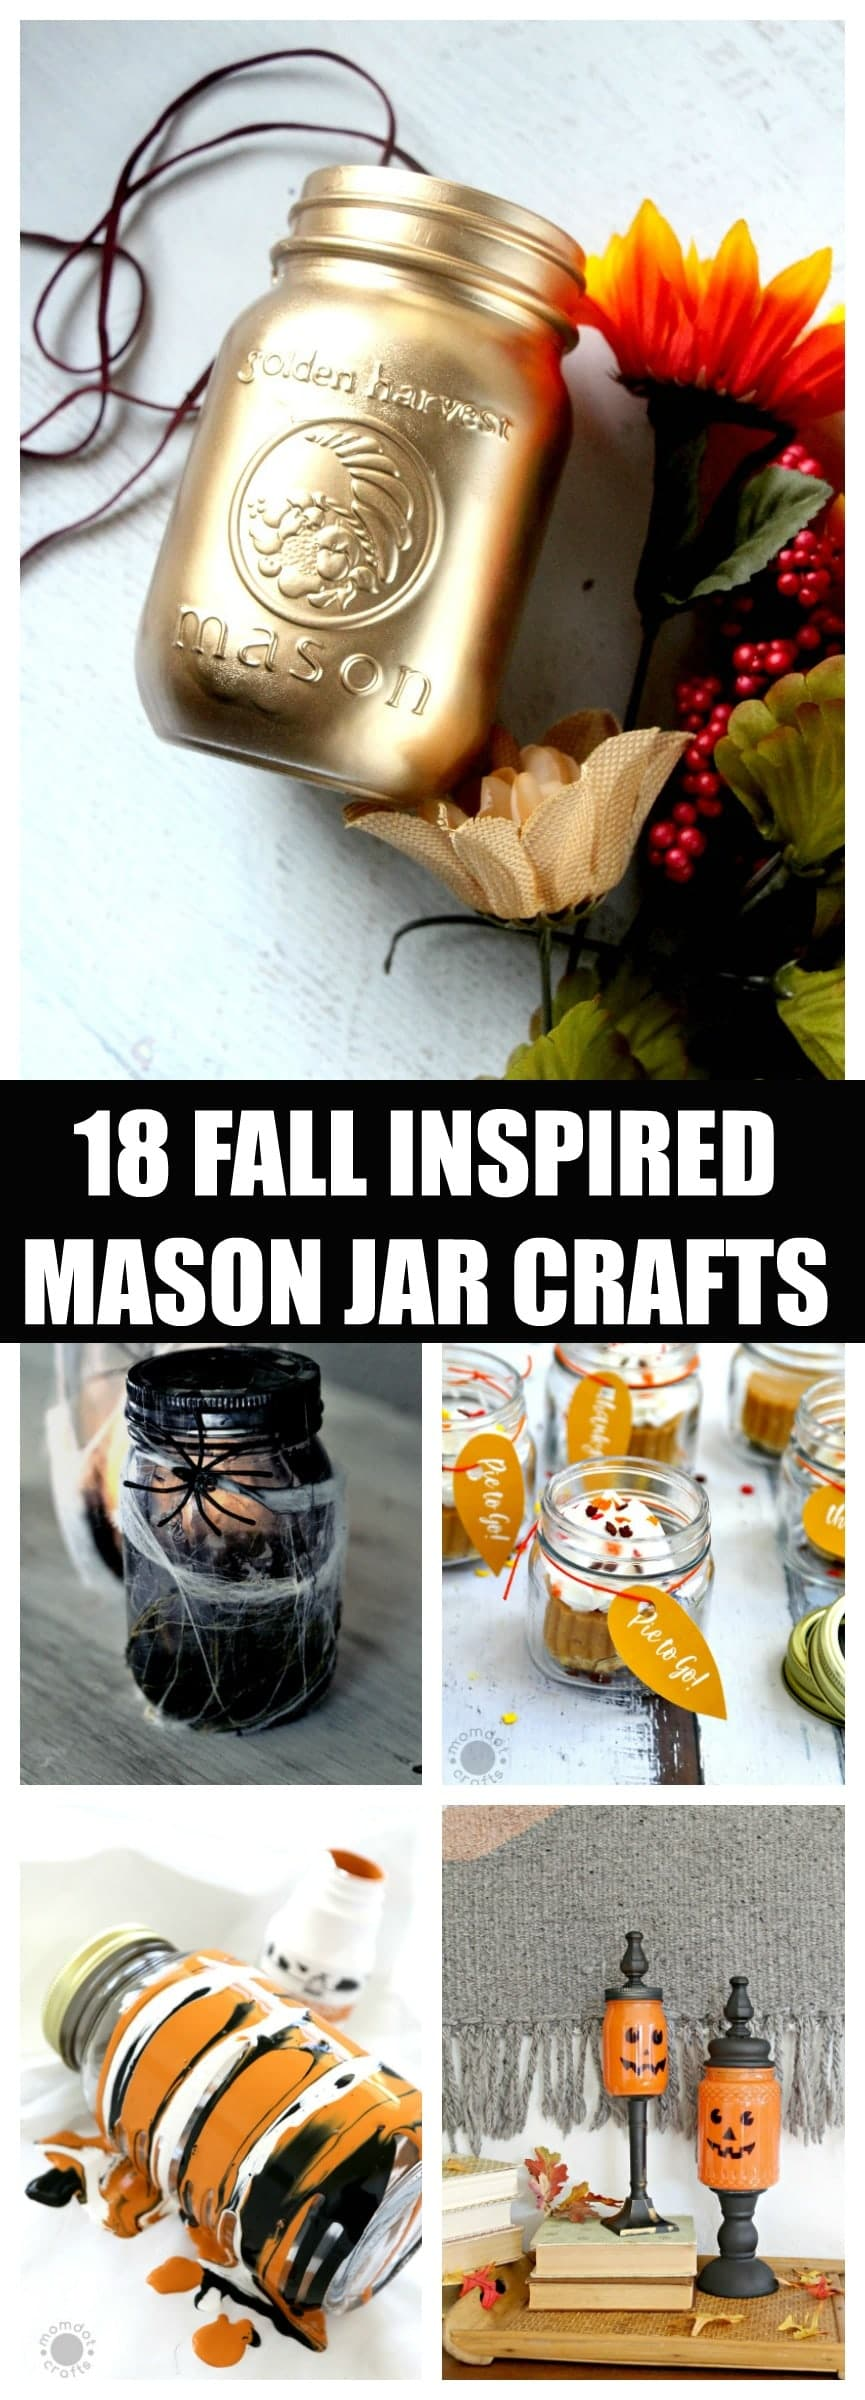 DIY mason jars decoration ideas for fall, Halloween, thanksgiving and more! 18 inspiring Fall Mason Jar Crafts